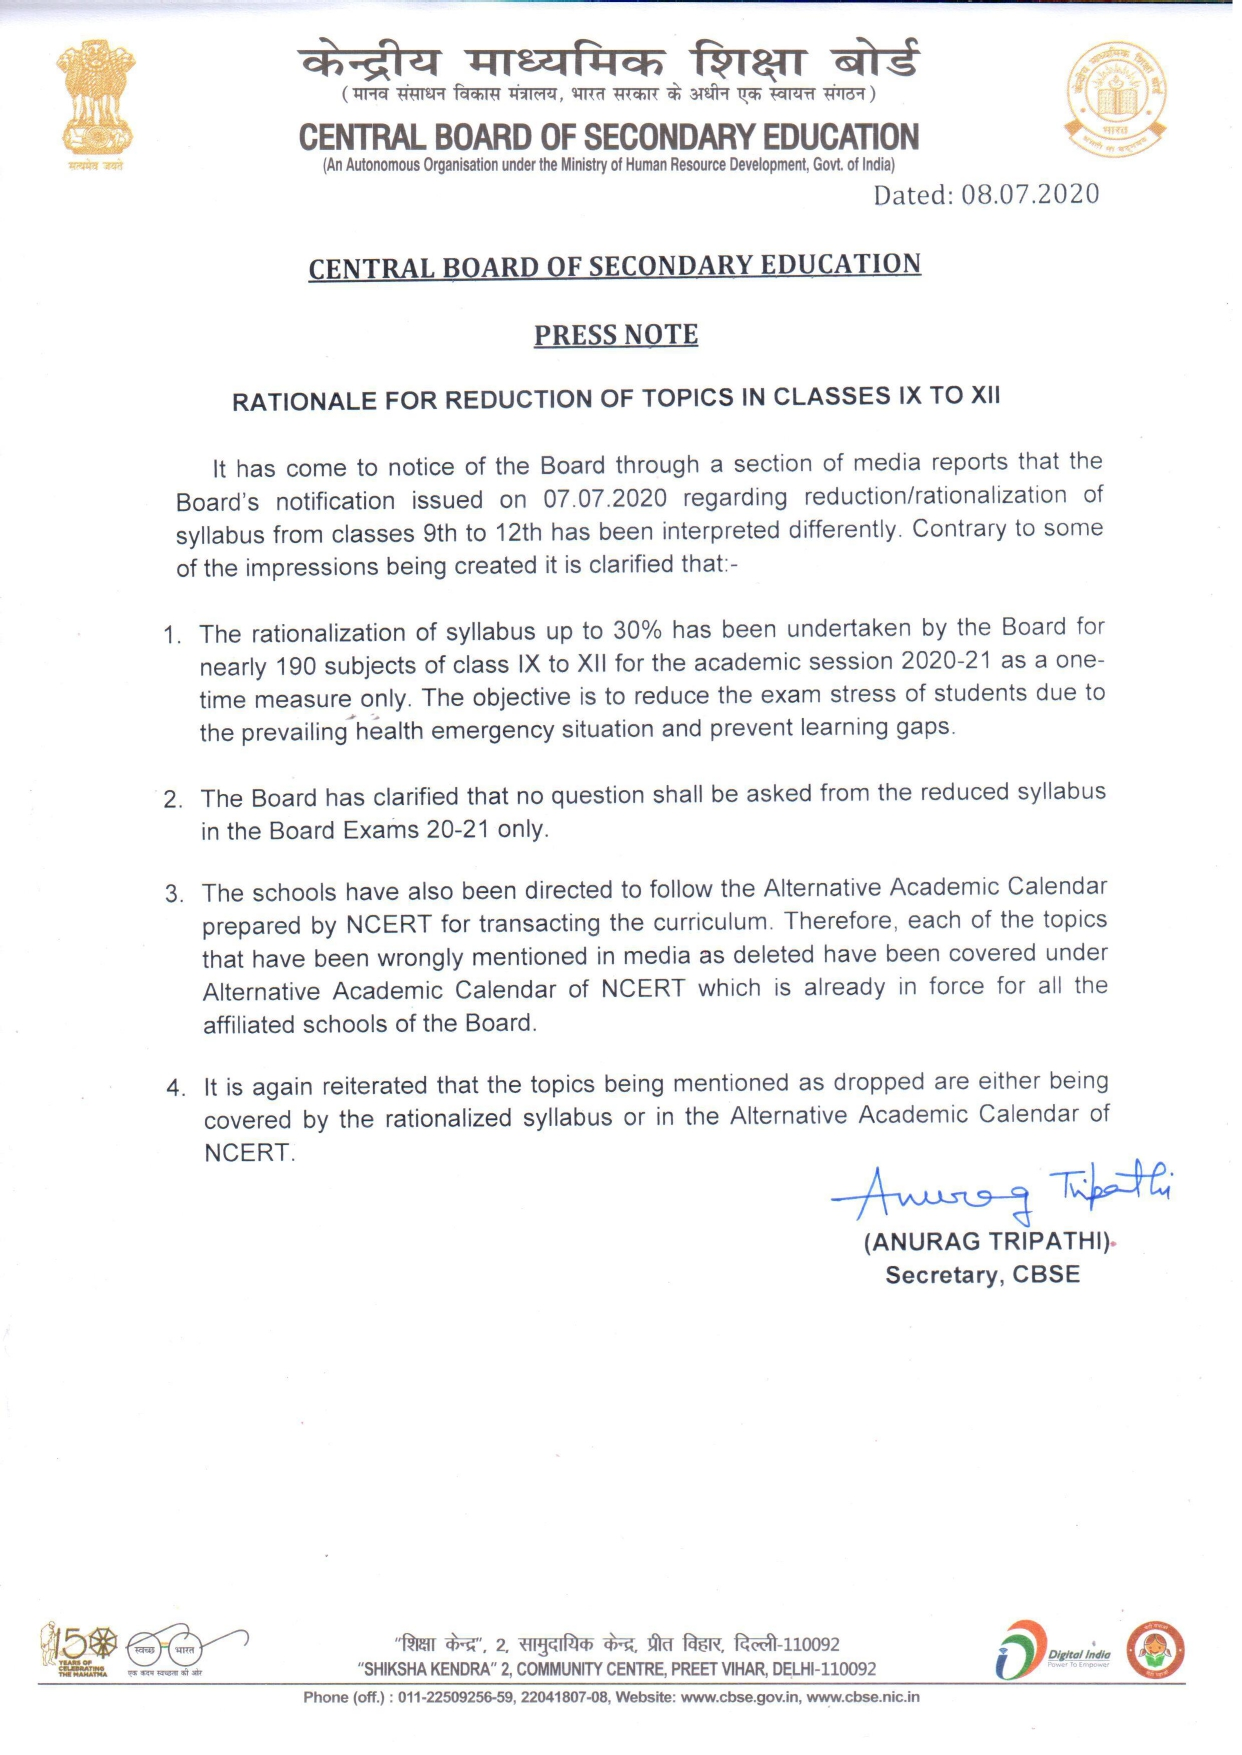 CBSE PRESS RELEASE 08.07.2020 (Rational for reduction of topics in class IX & XII)